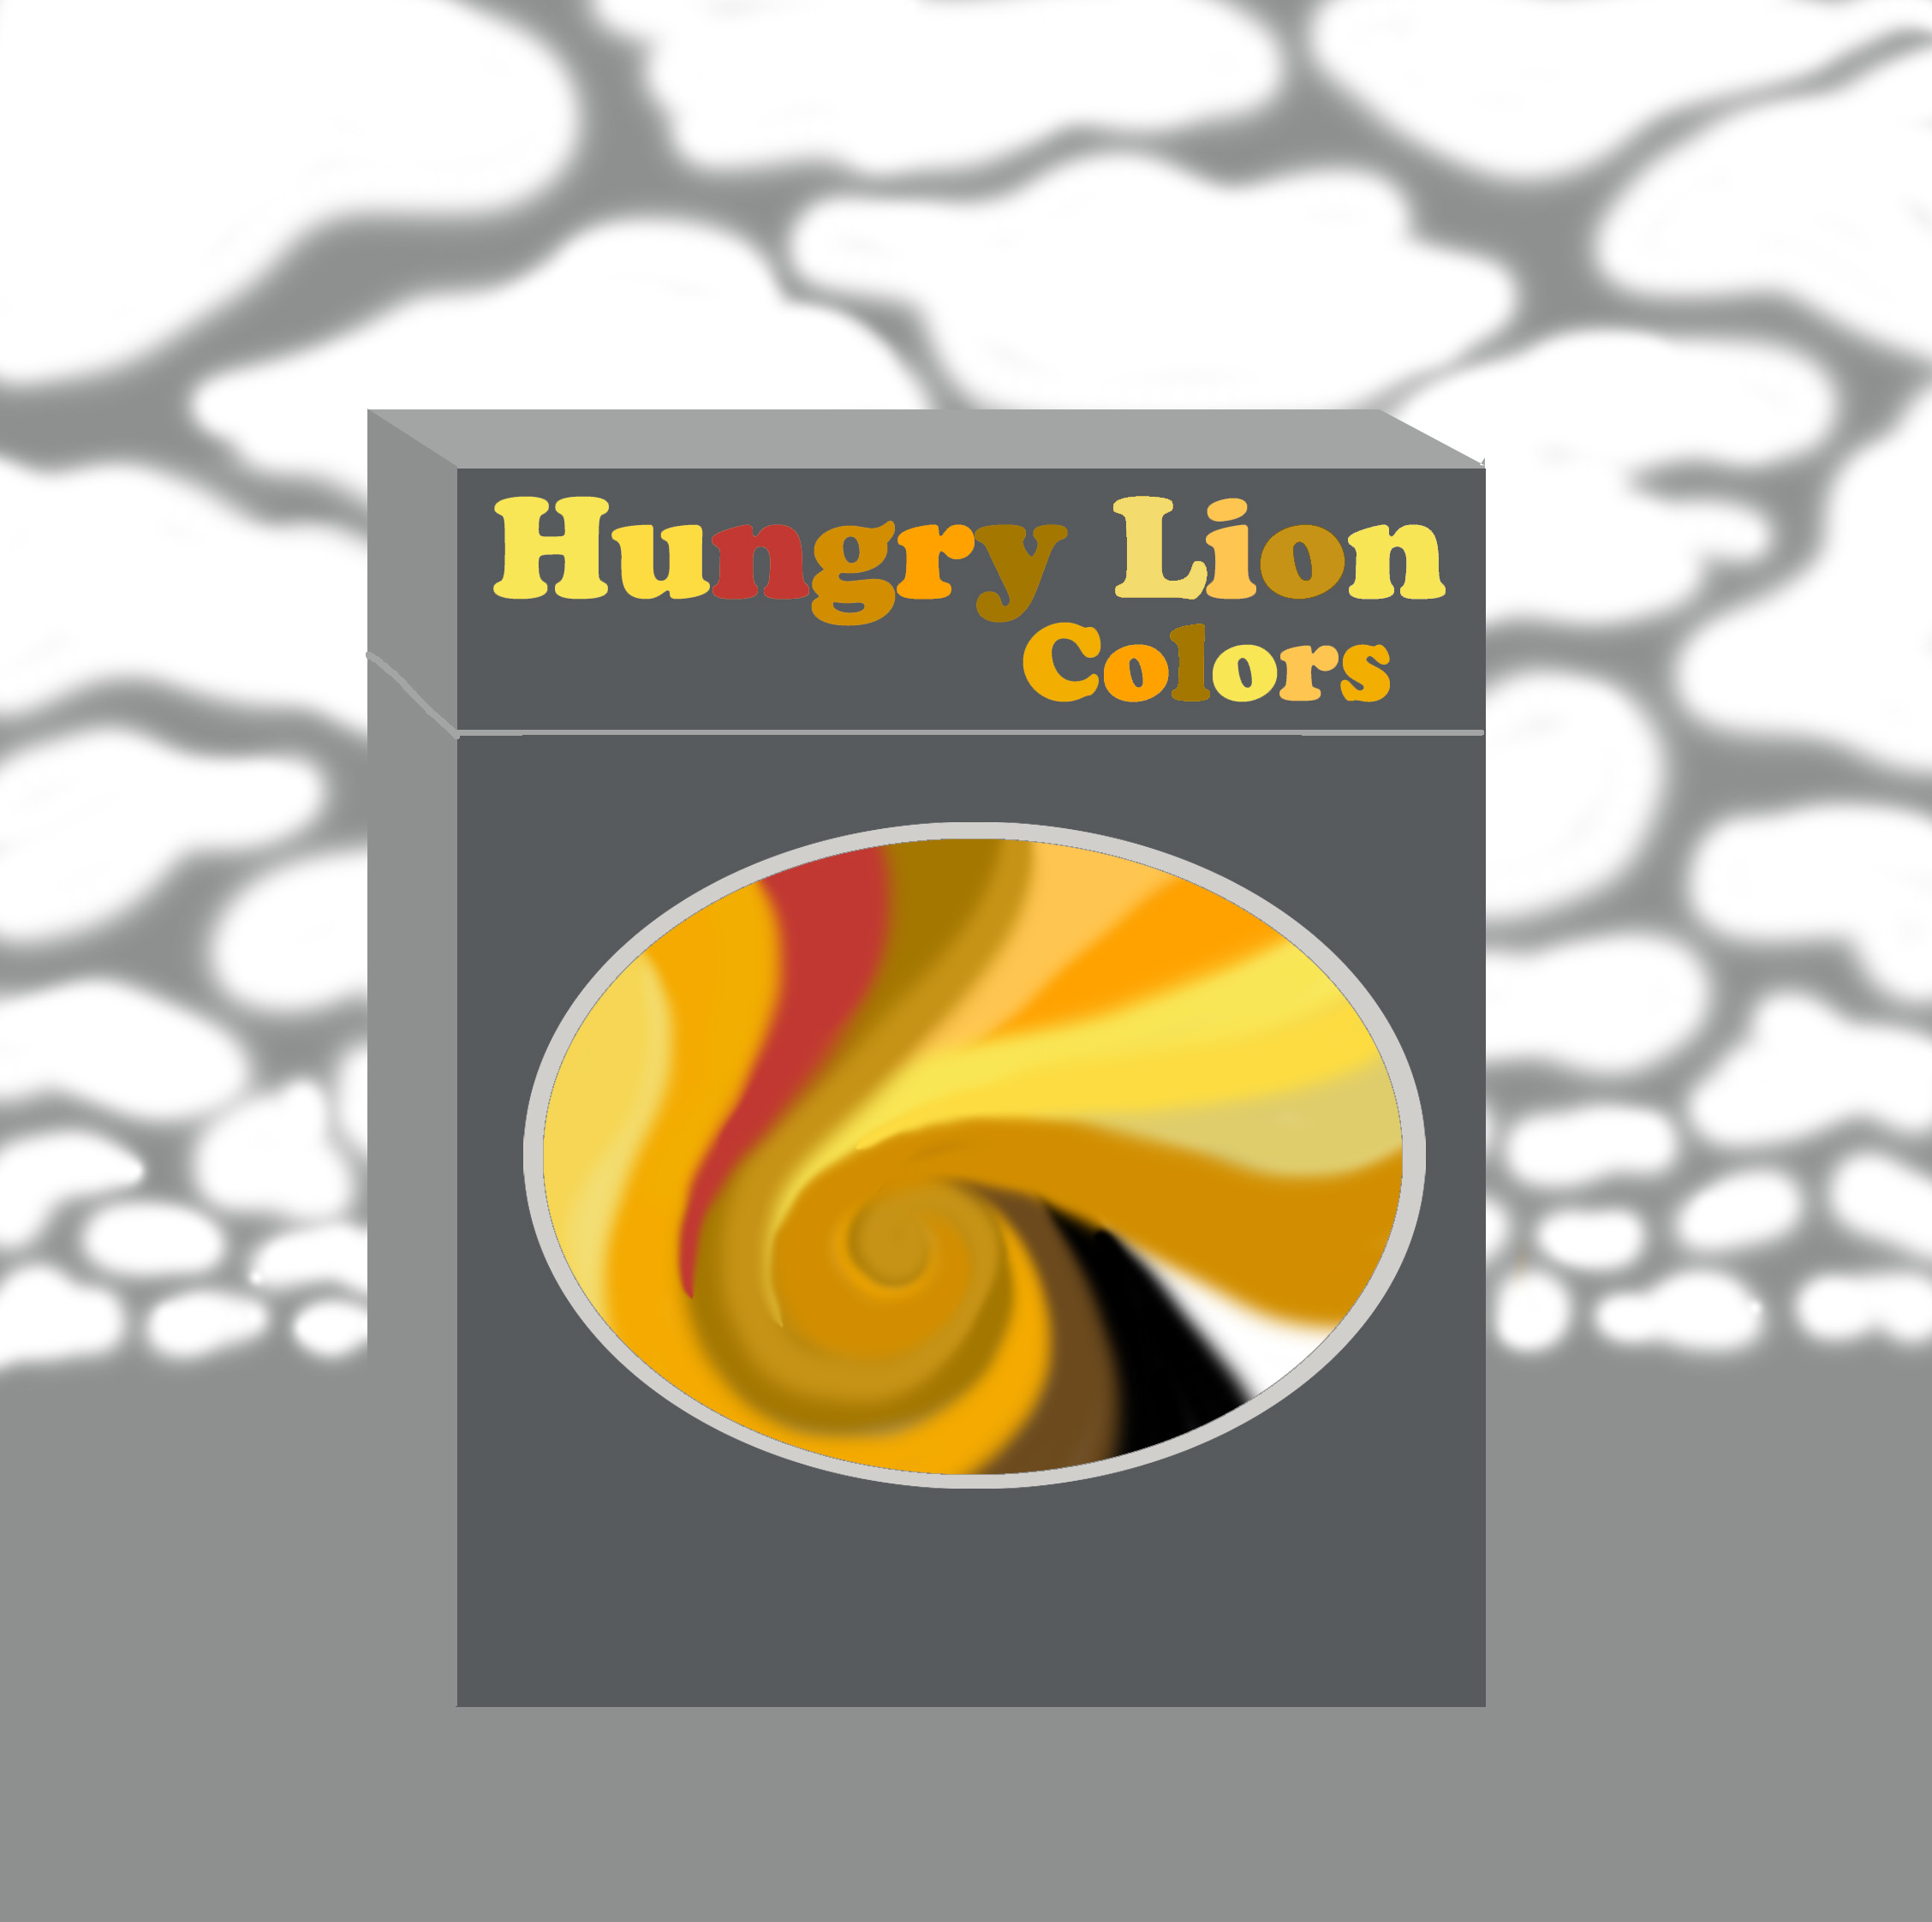 Hungry Lion colors